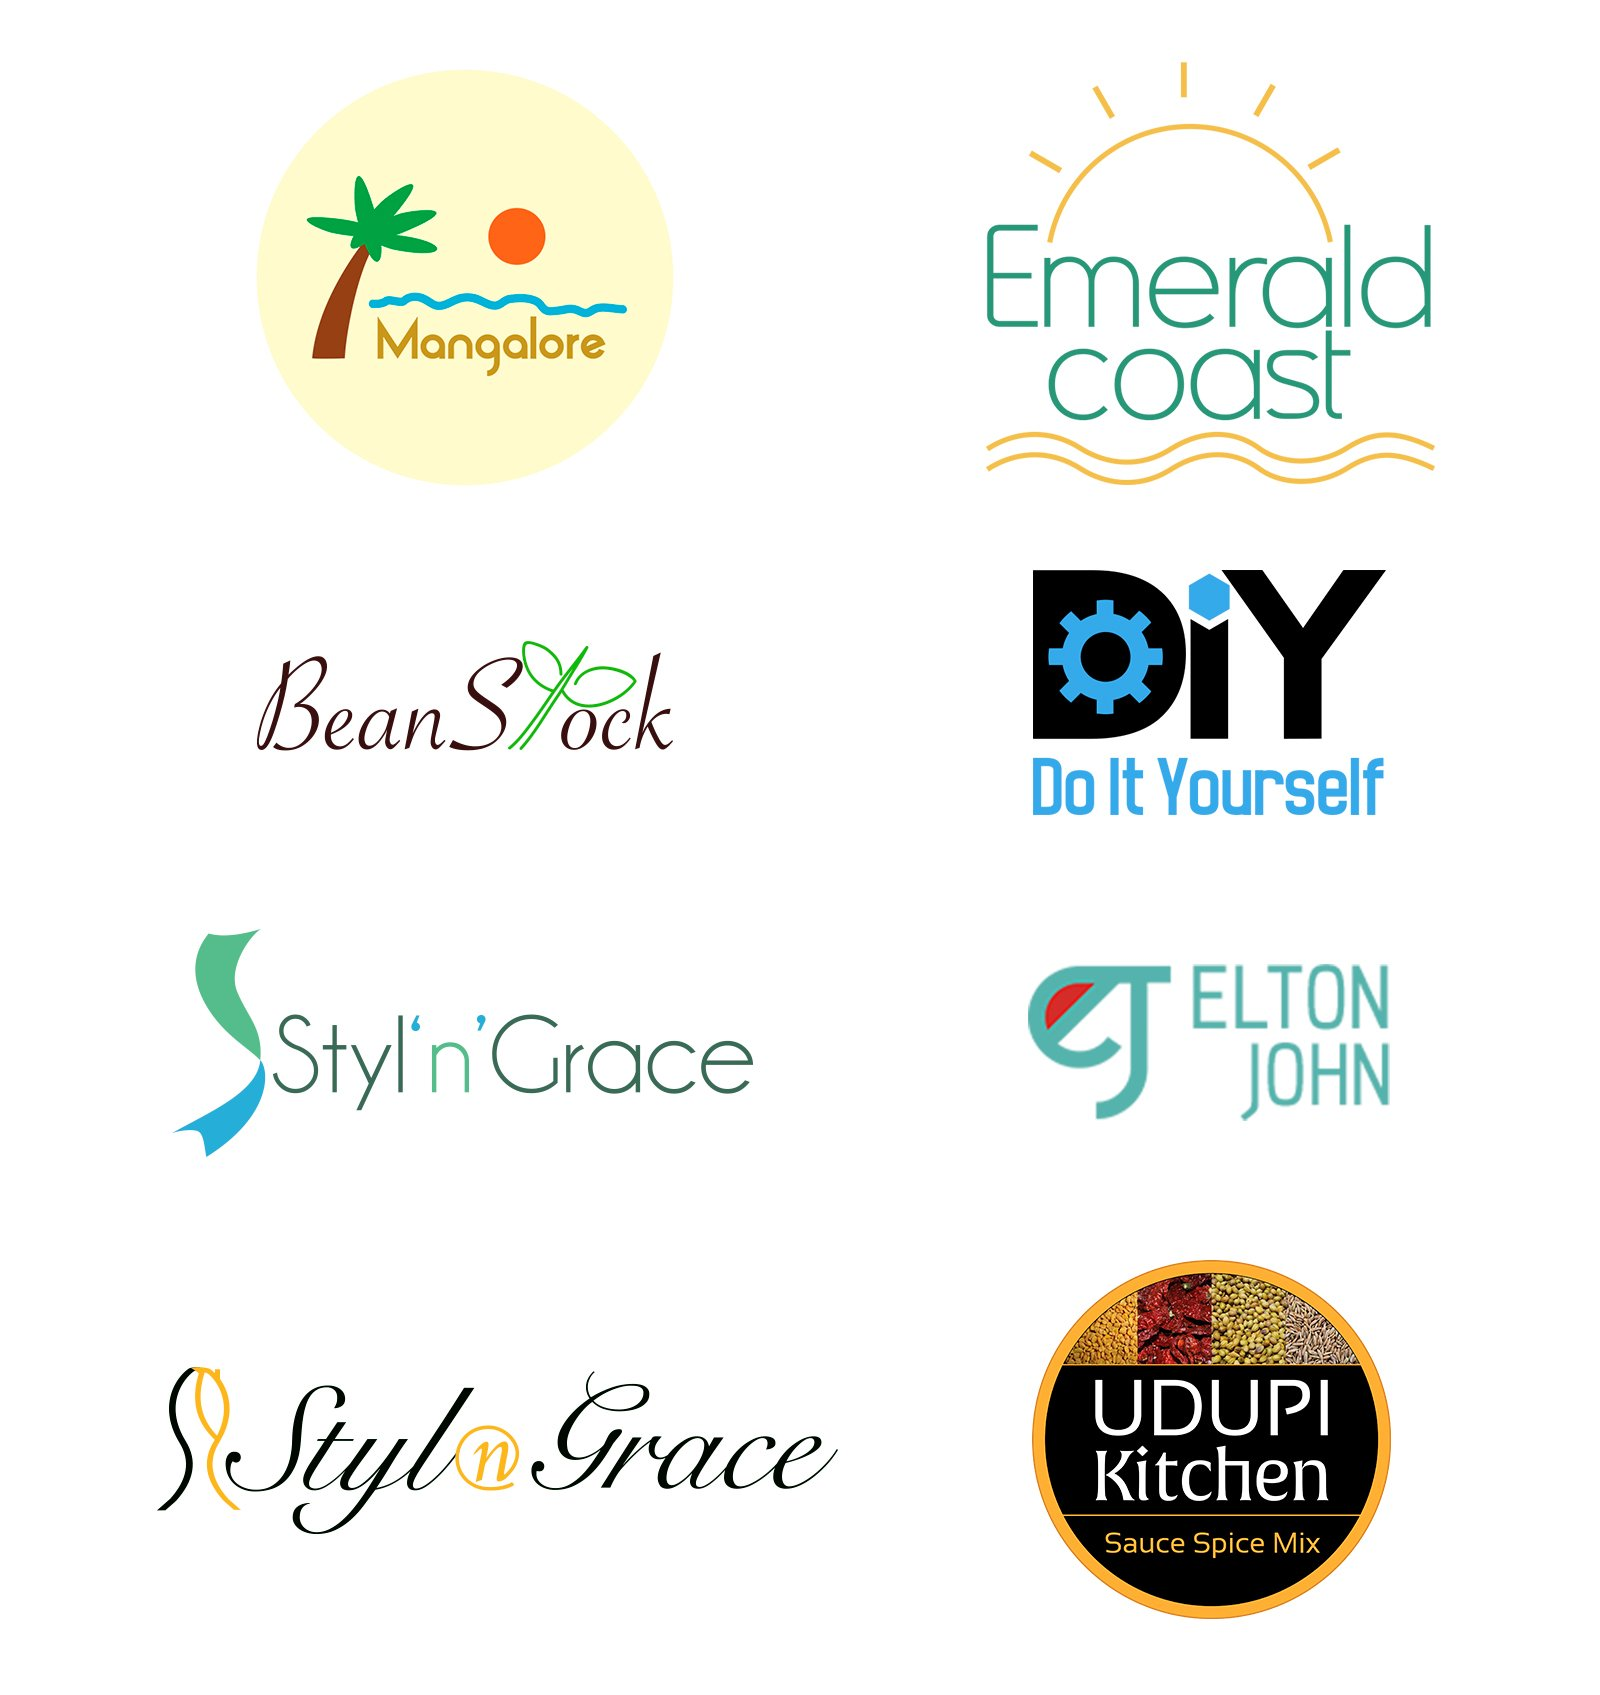 Logo Design for Mangalore - my home town, Emerald Coast Florida, BeanStock - coffee company, DIY, Styl'n'Grace - a Fashion Design Company, Elton John tour logo, Udupi Kitchen - a spice mix business.